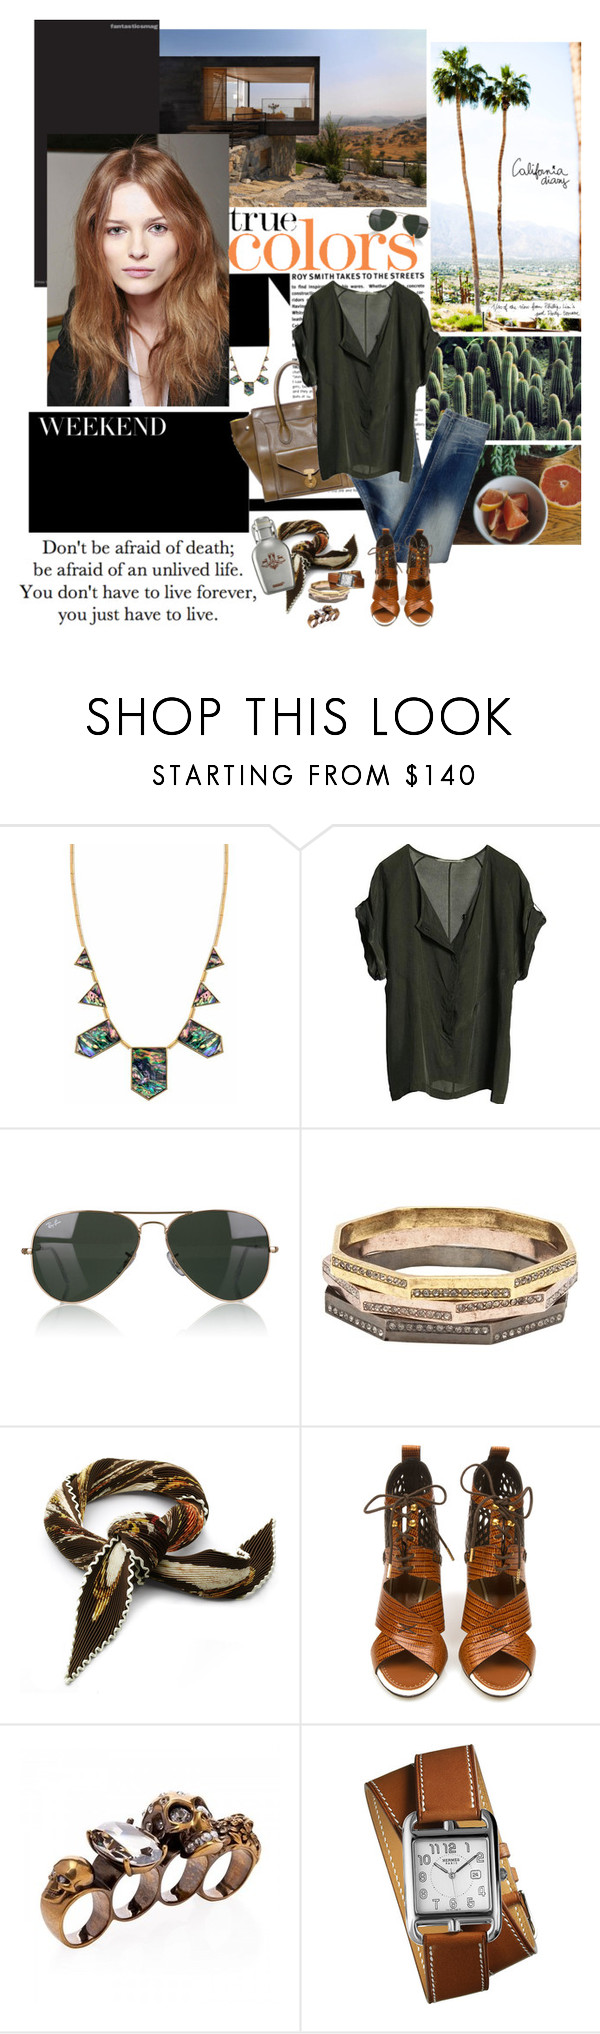 """""""Death Valley weekend"""" by shift ❤ liked on Polyvore featuring House of Harlow 1960, Garance Doré, CÉLINE, Diesel, Graumann, Ray-Ban, Paige Novick, Hermès, Proenza Schouler and Alexander McQueen"""